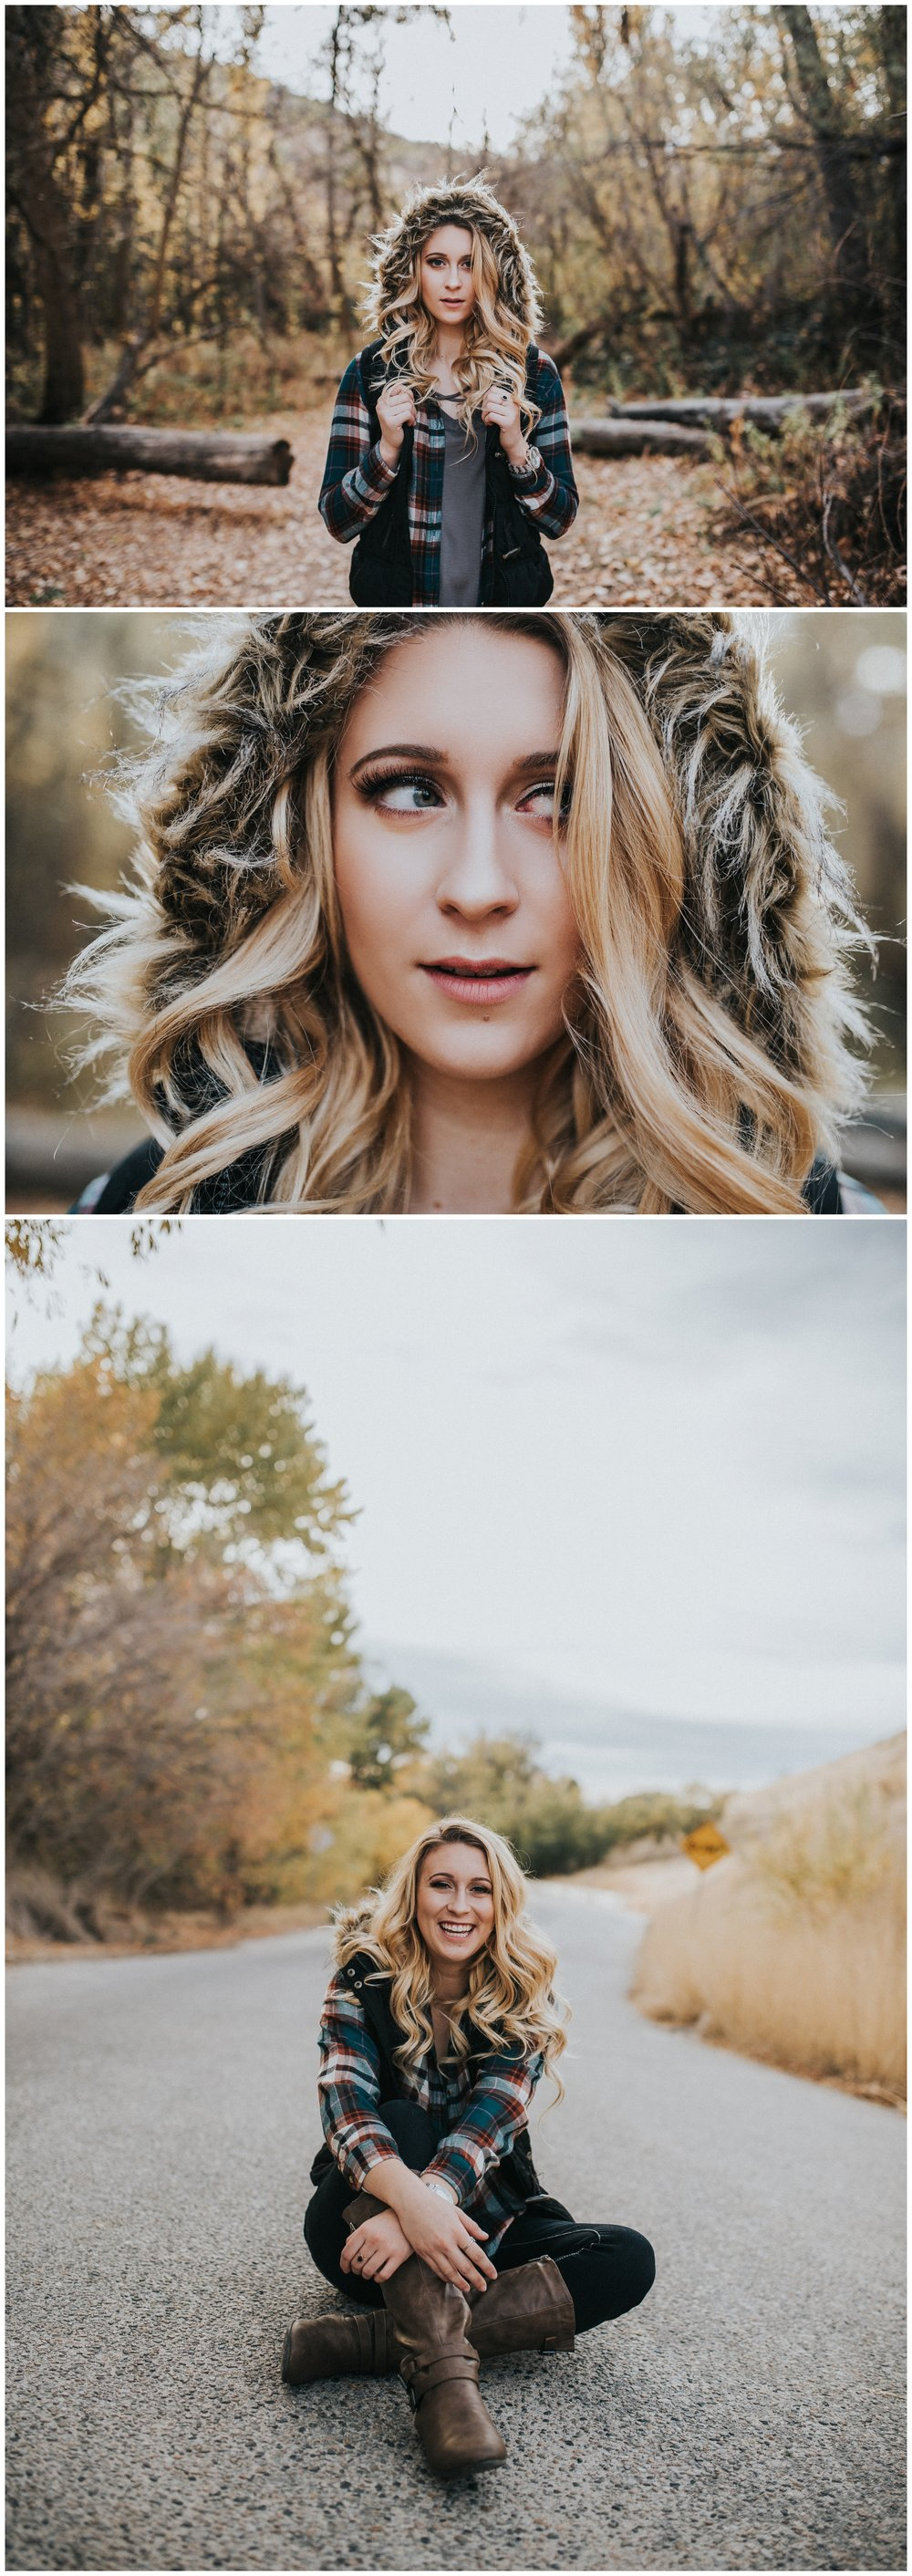 Boise Idaho Senior Portrait Photographer Kuna High School Downtown Boise Fall senior session Military Reserve